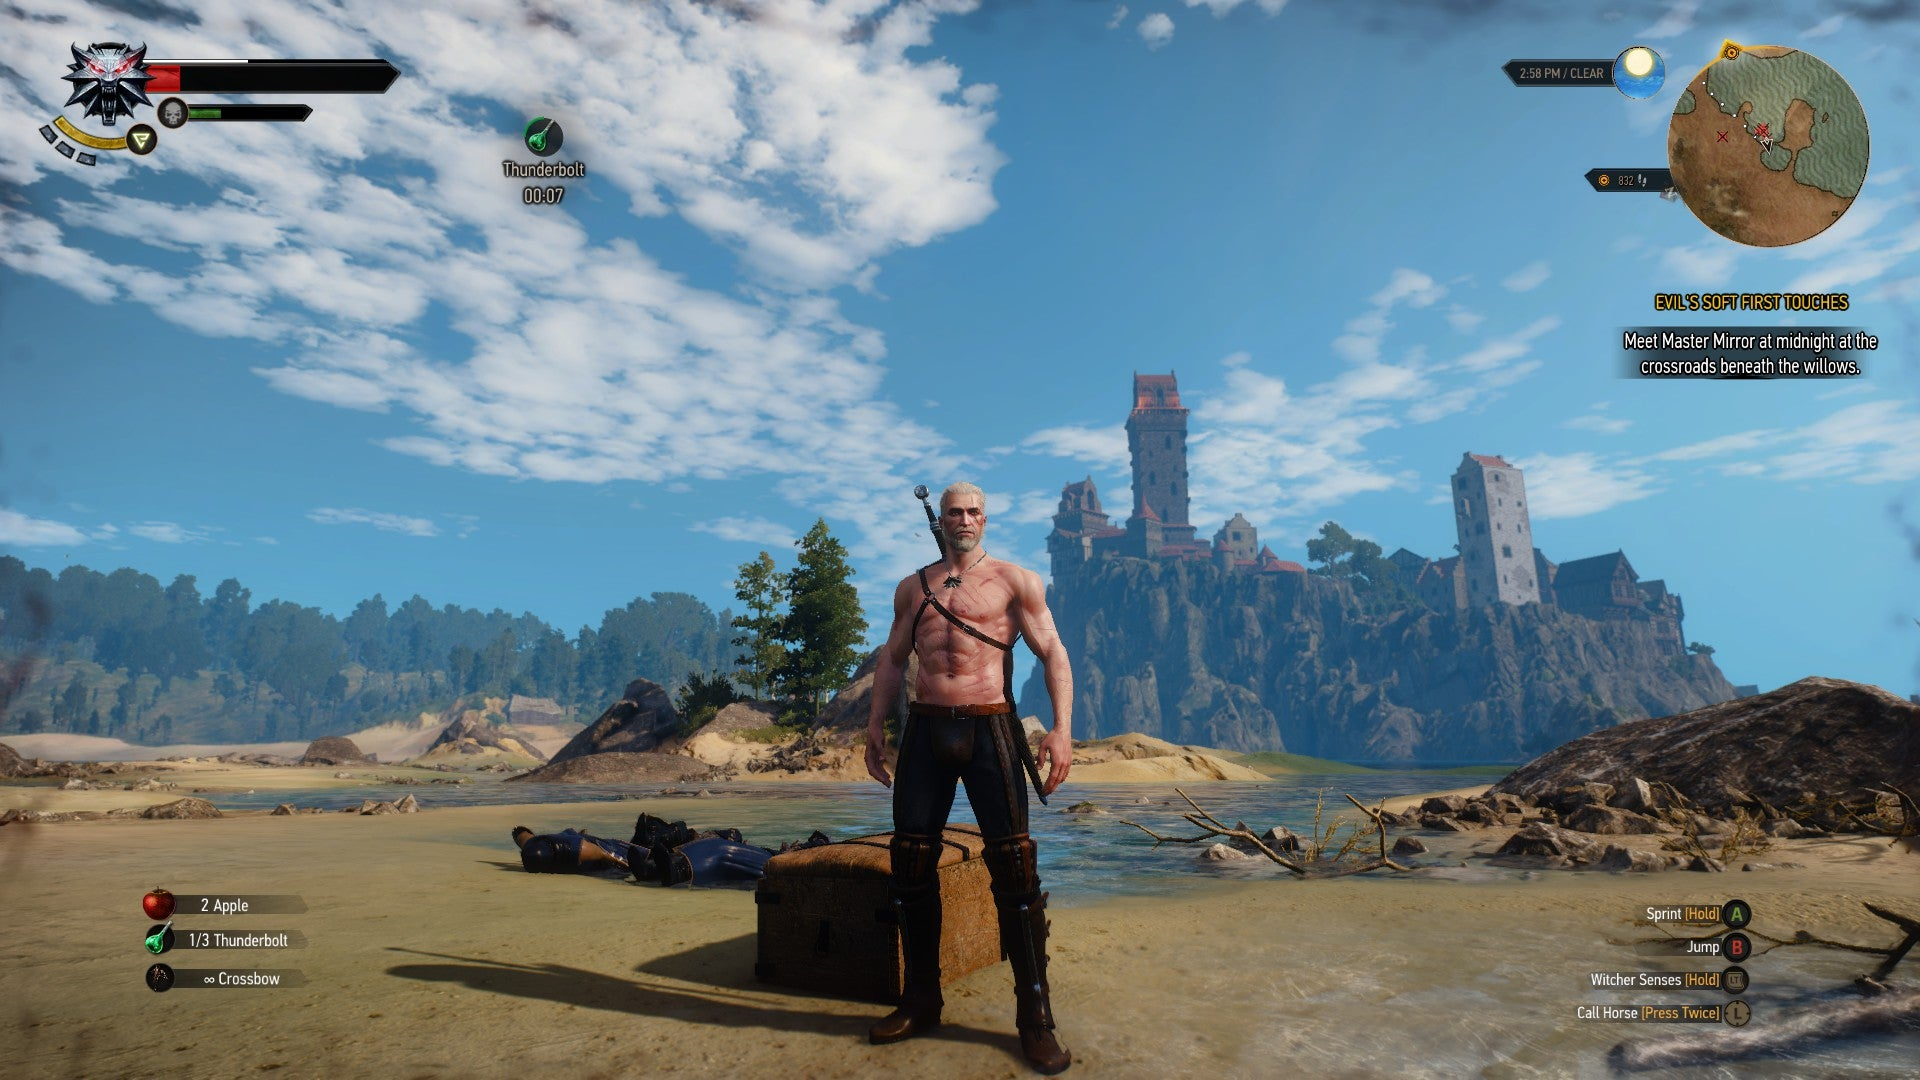 Playerunknown S Battlegrounds Wallpapers: The Video Games Of 2017, As Screenshots From The Witcher 3